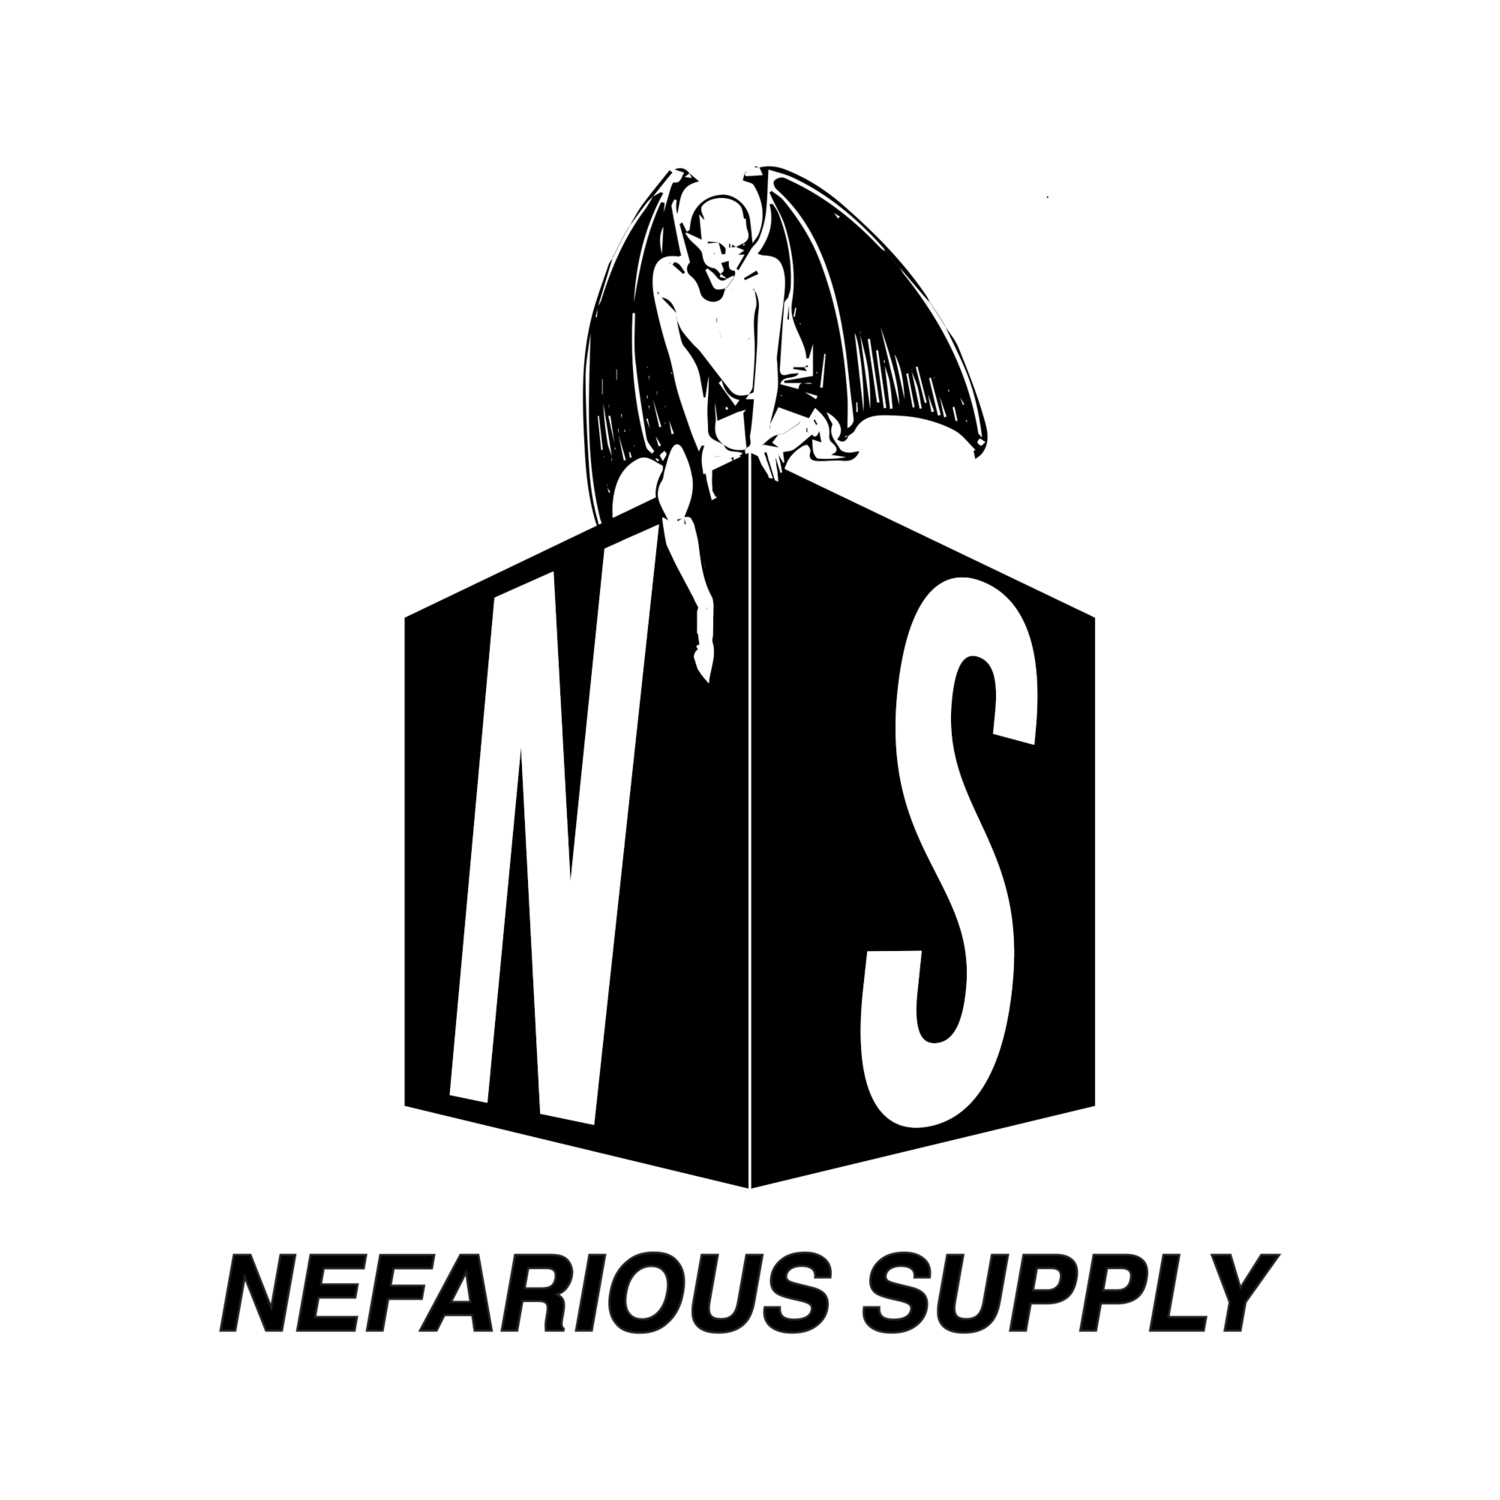 Nefarious Supply